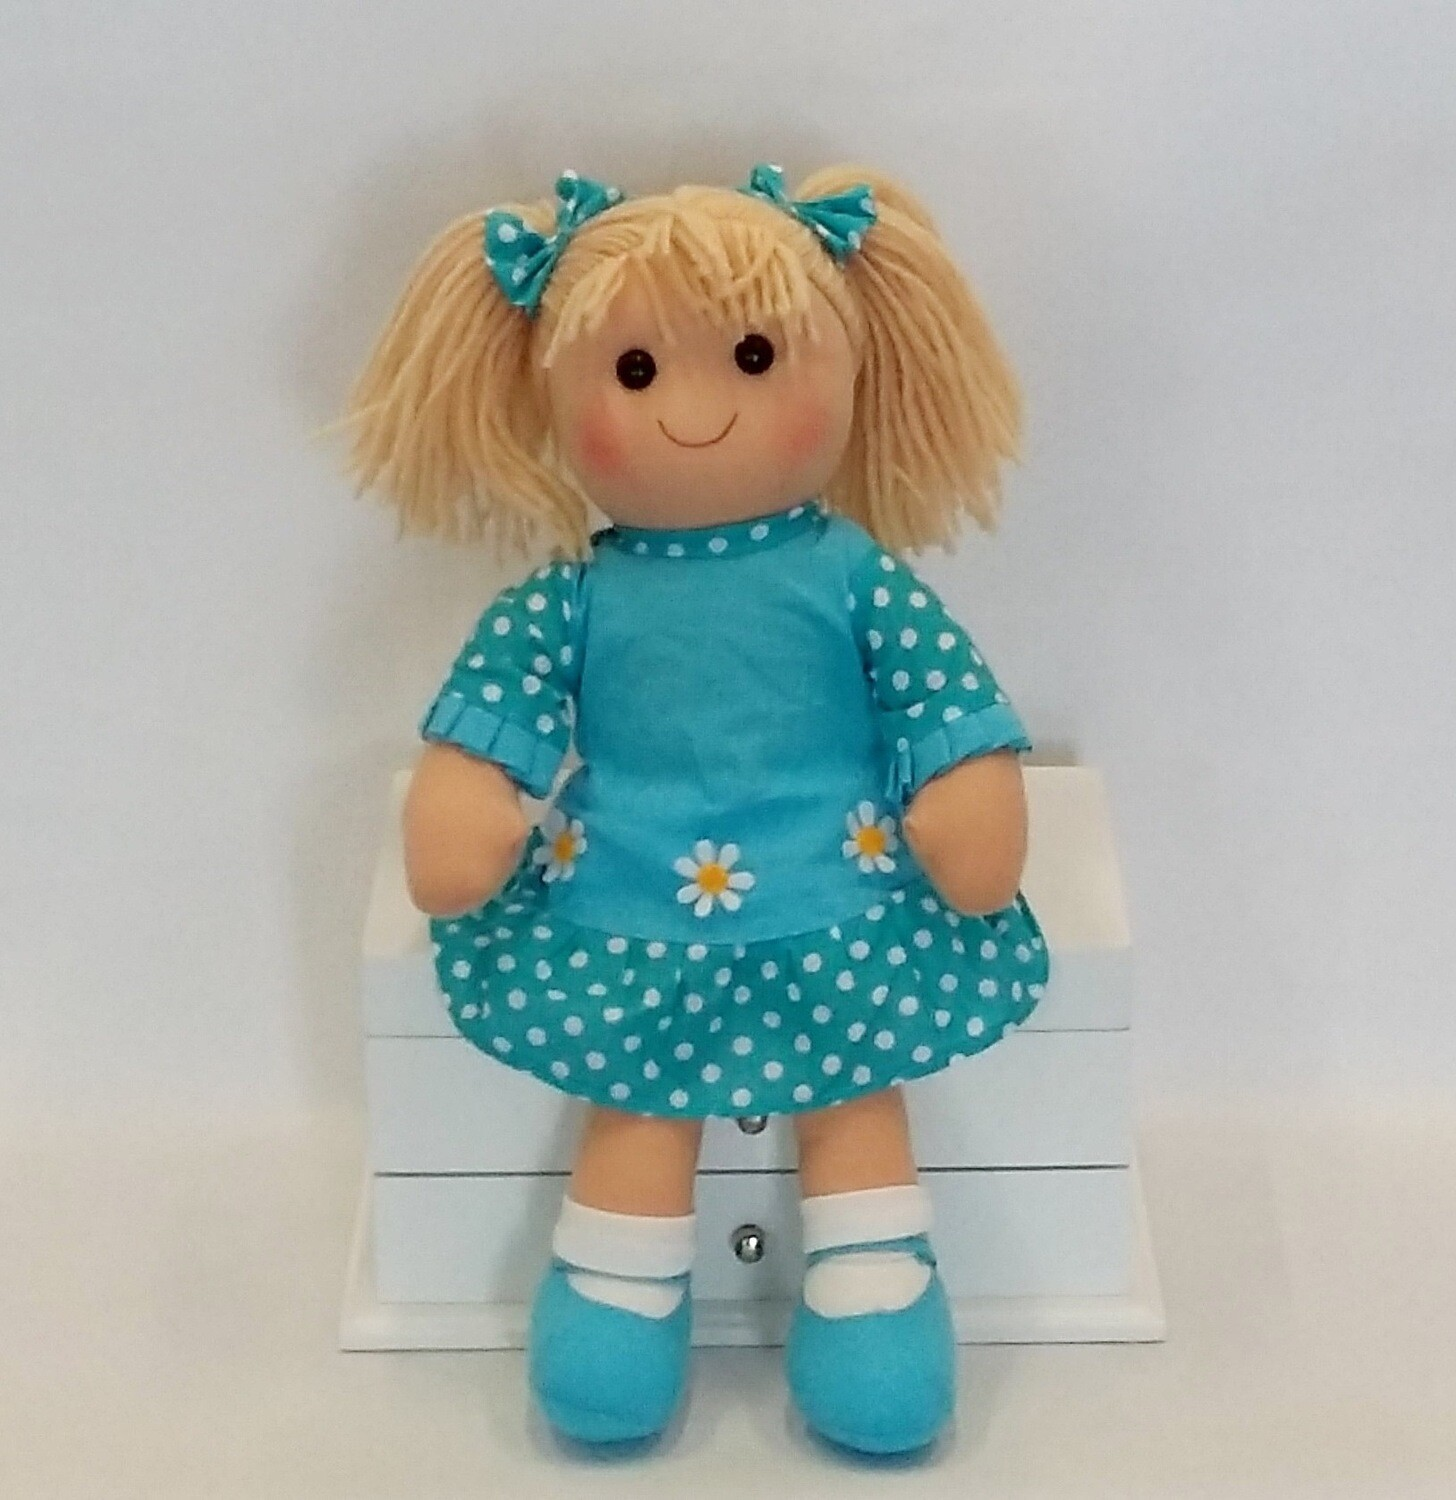 Collectable Doll - Agnes